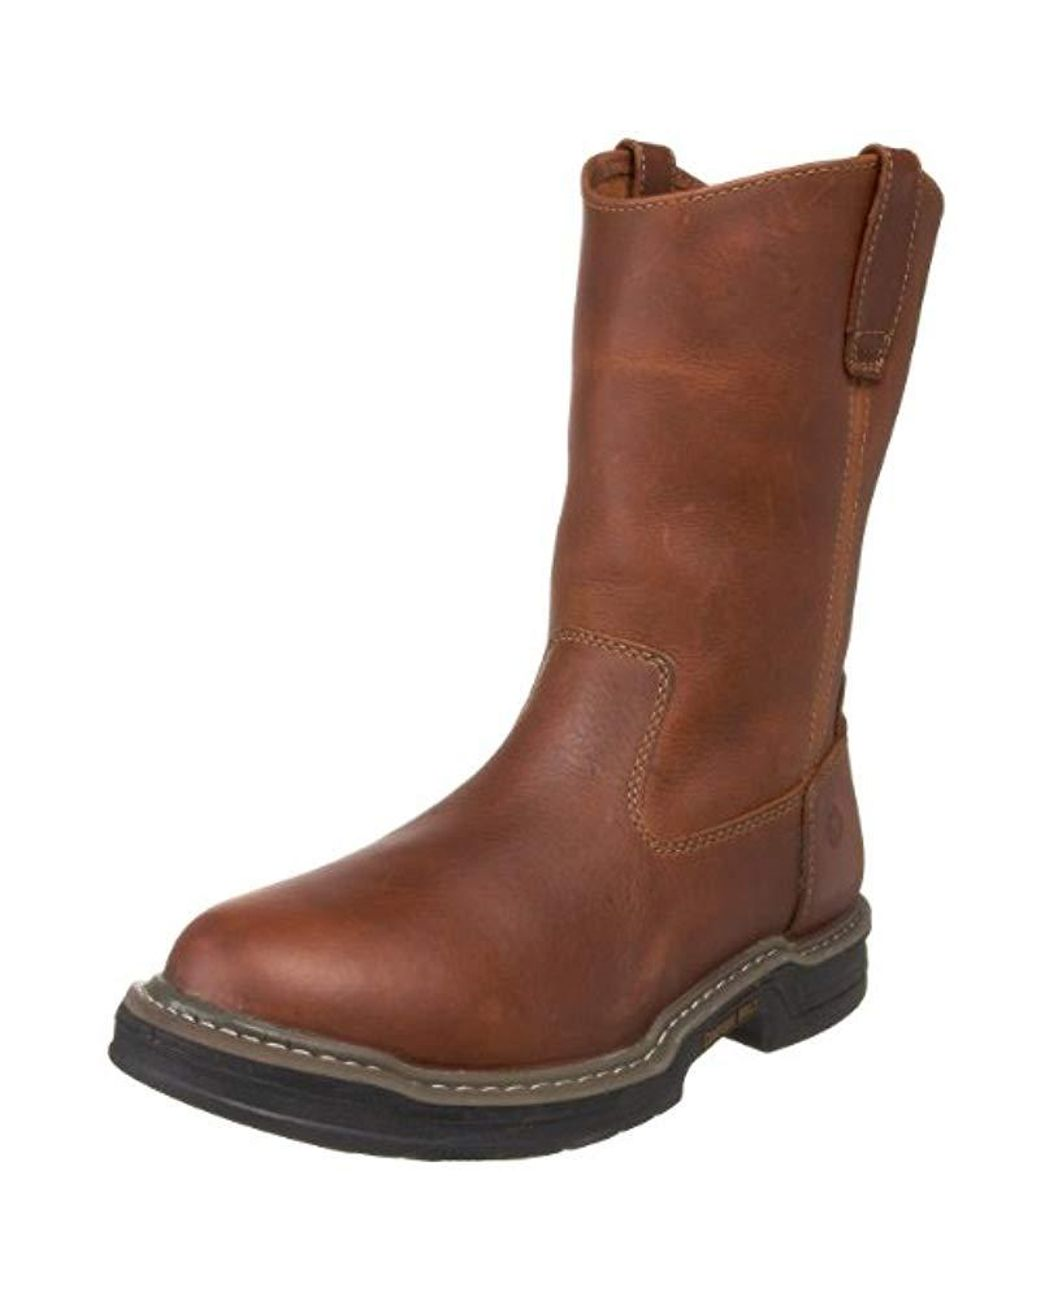 79a574e9b6627 Wolverine W02429 Raider Boot,brown,9 Ew Us in Brown for Men - Lyst